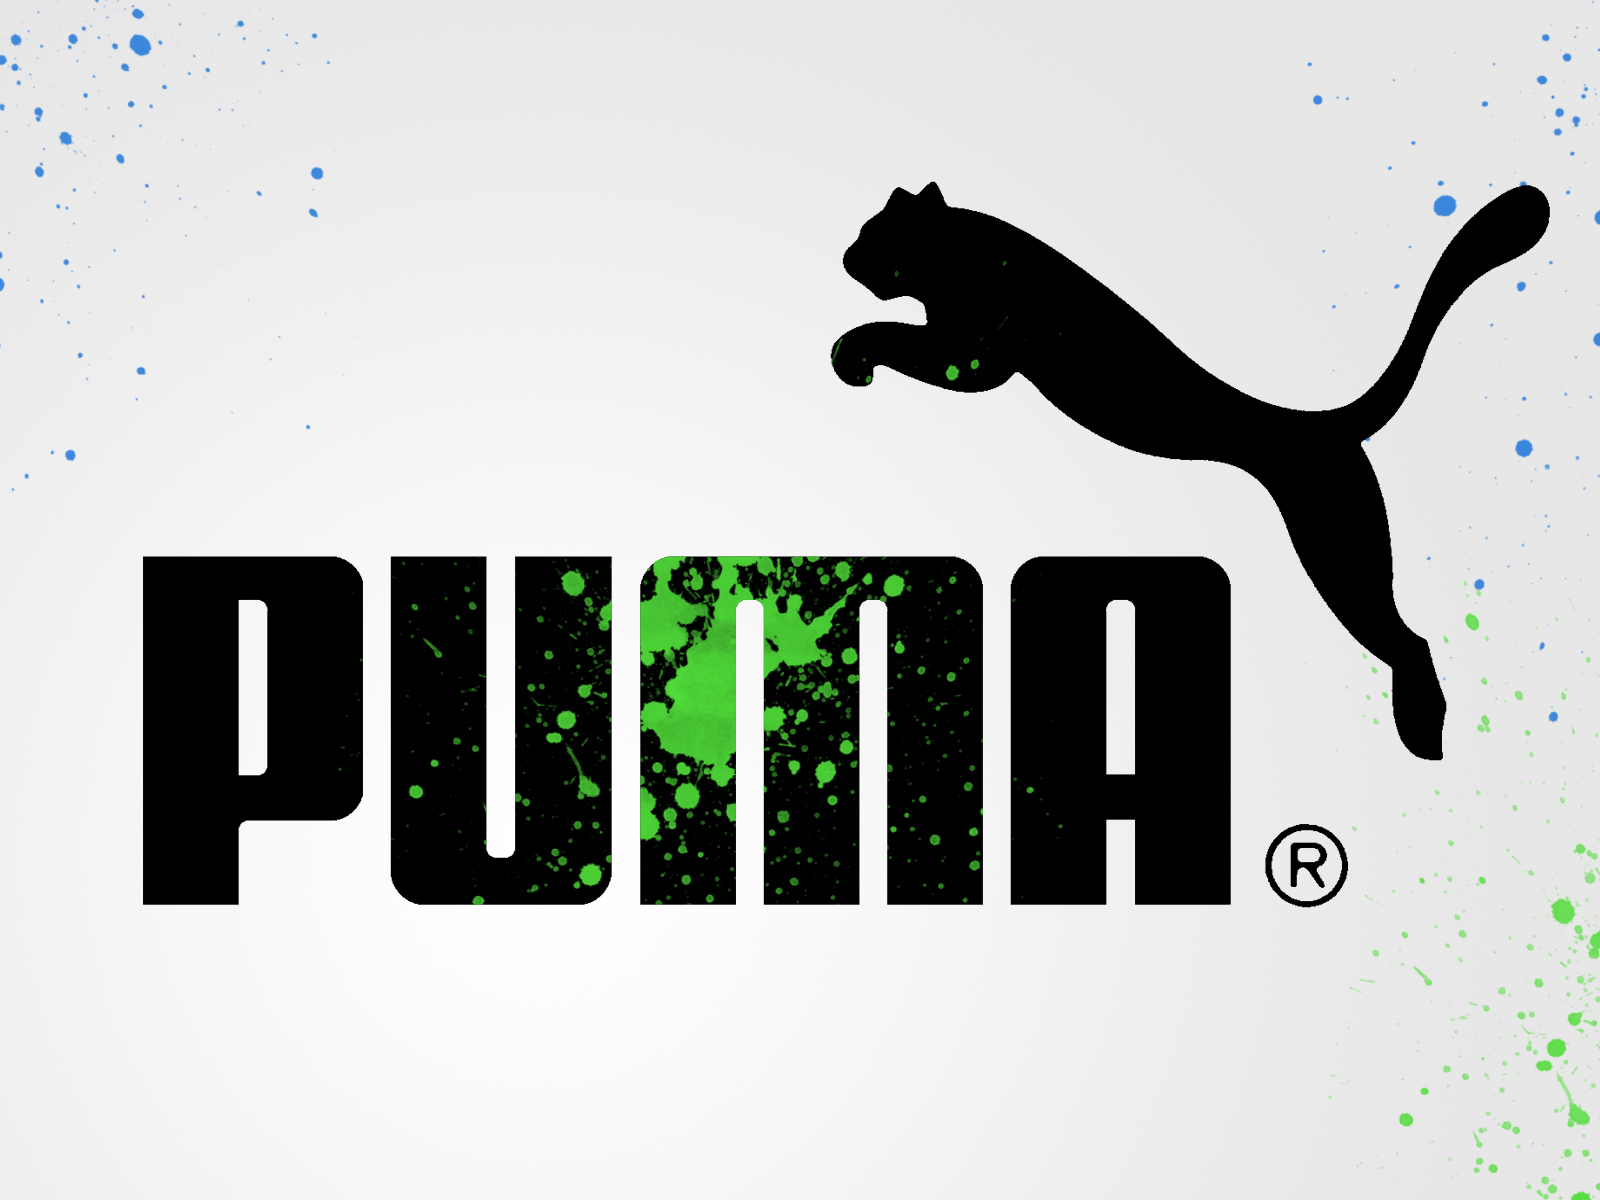 puma logo wallpaper 6jpg - photo #1